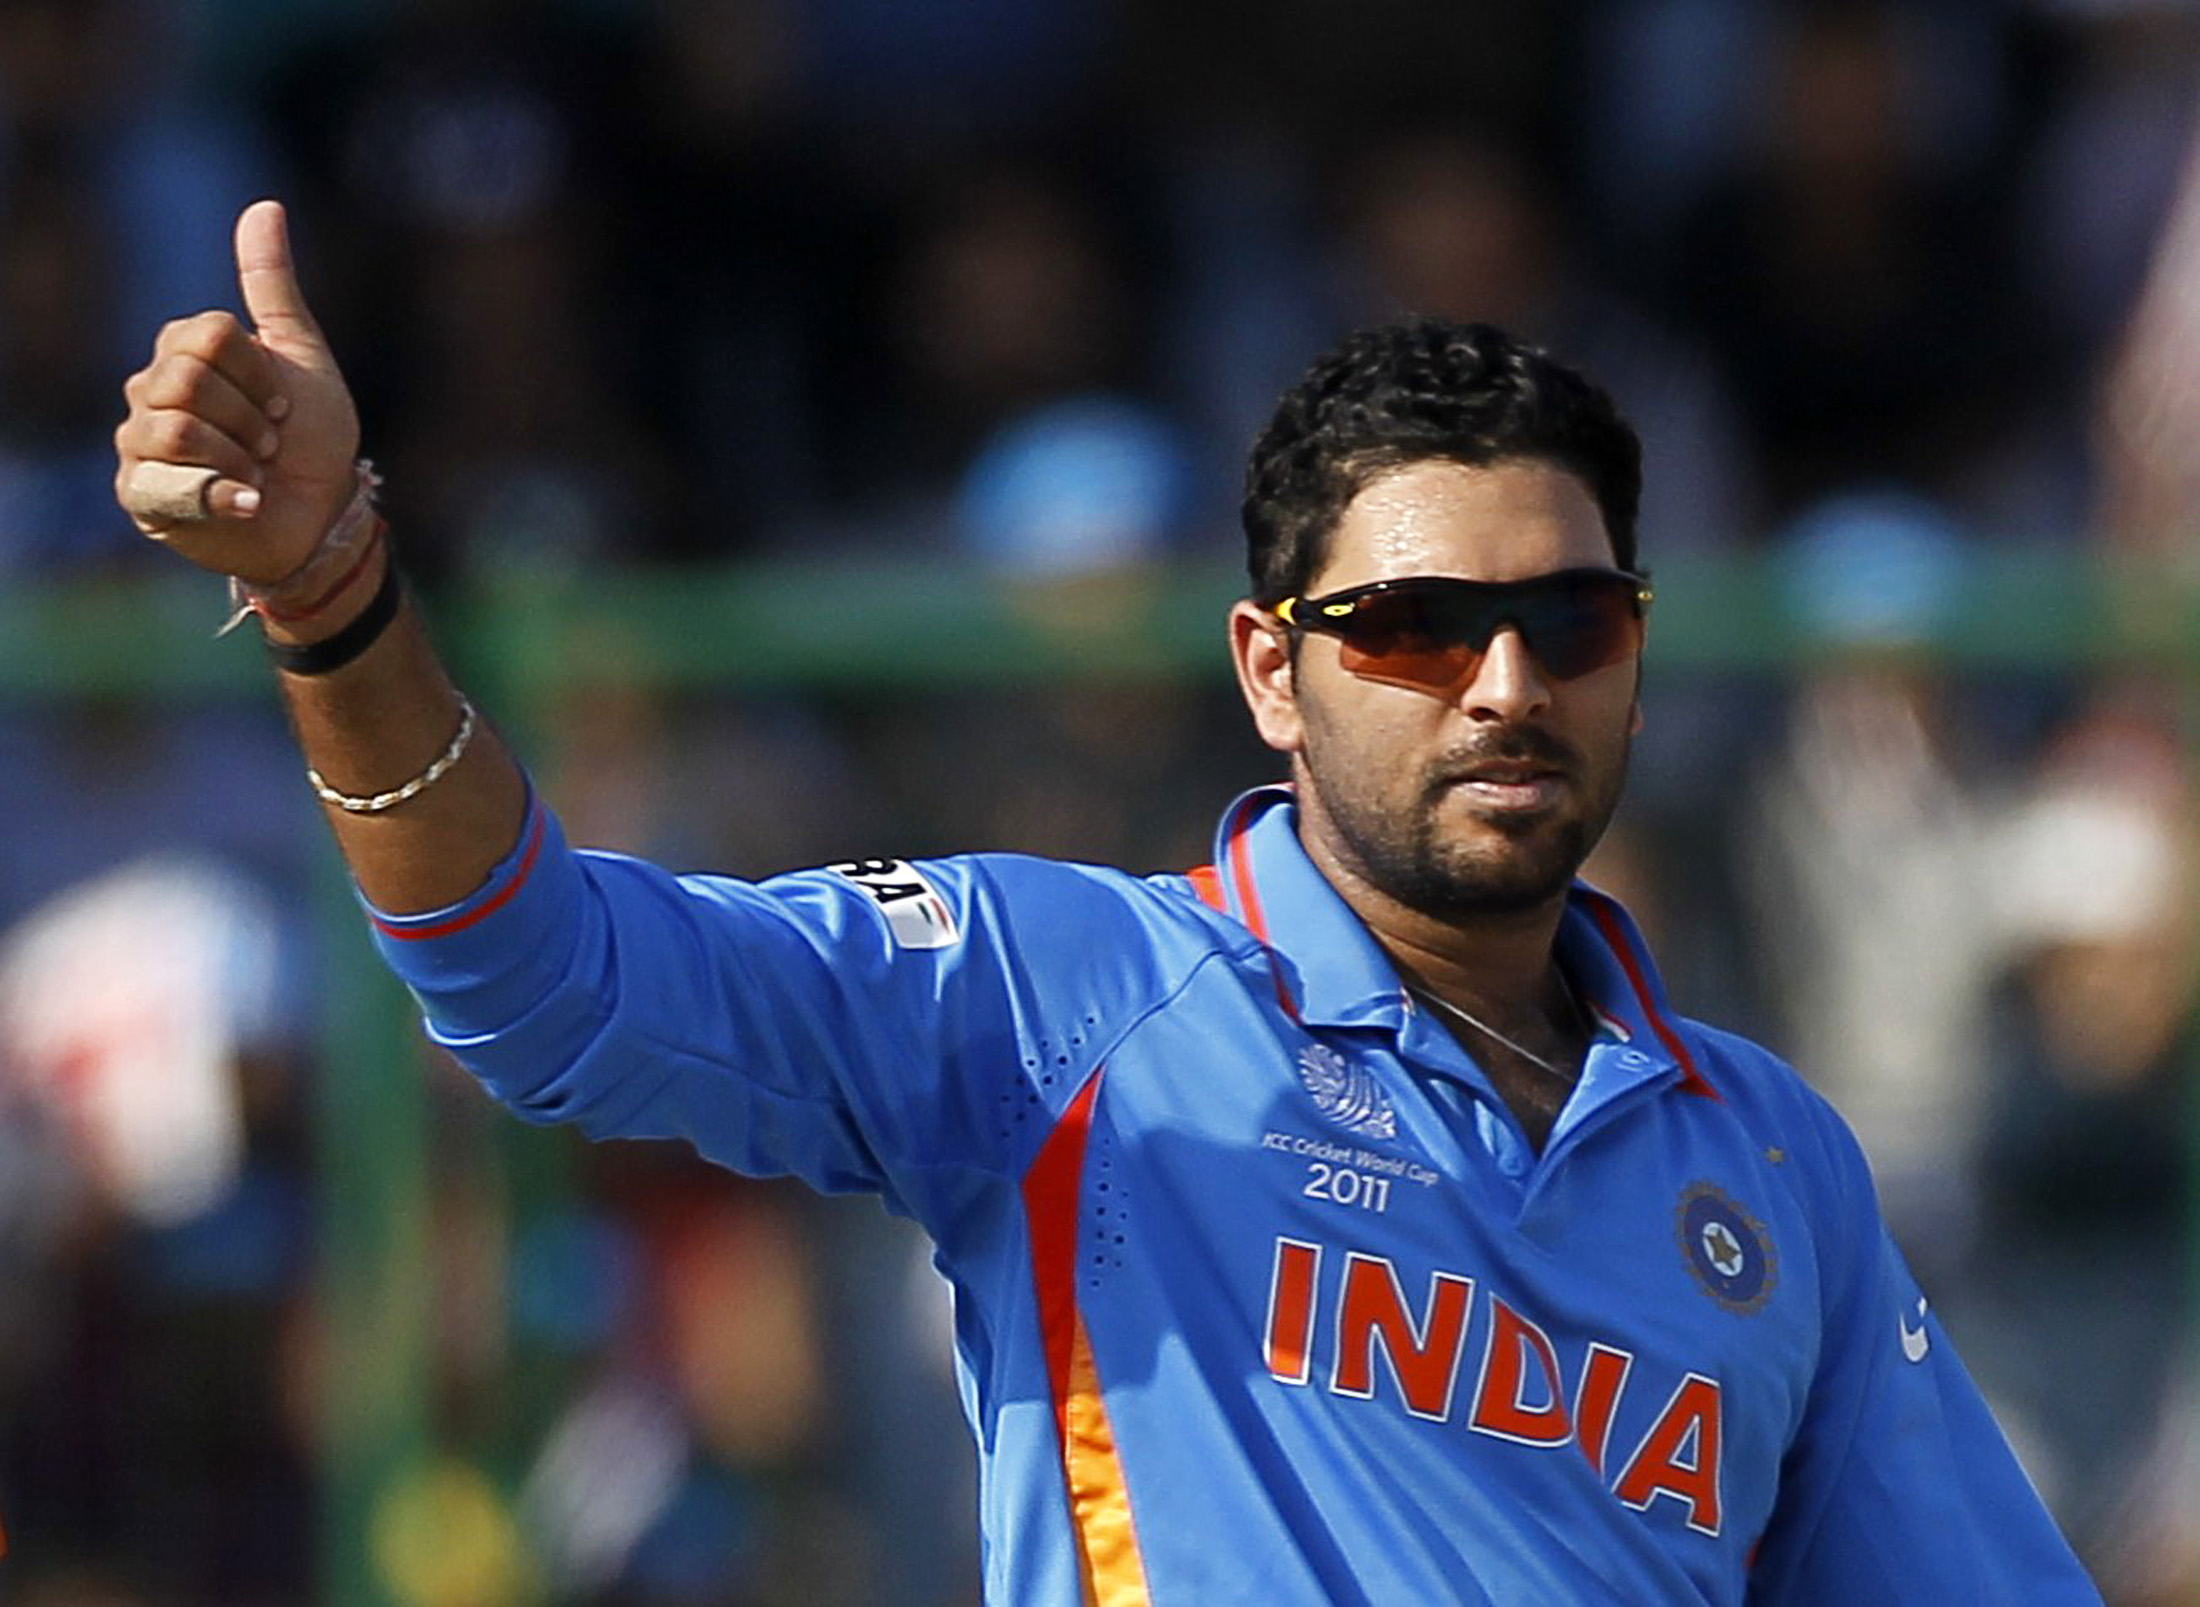 Yuvraj Singh wants to feature in 2019 World Cup | Getty